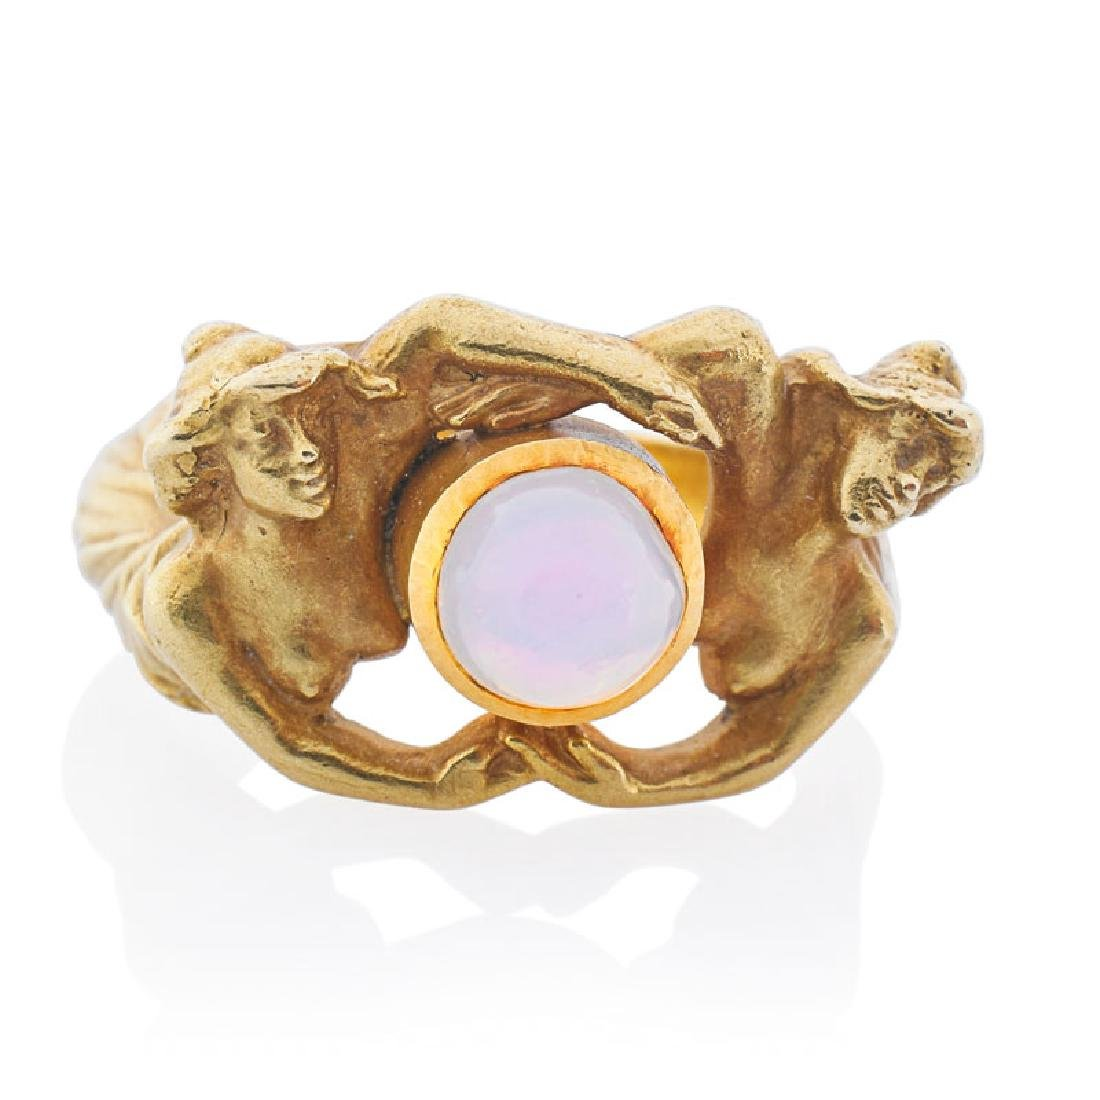 ART NOUVEAU FIGURAL YELLOW GOLD RING